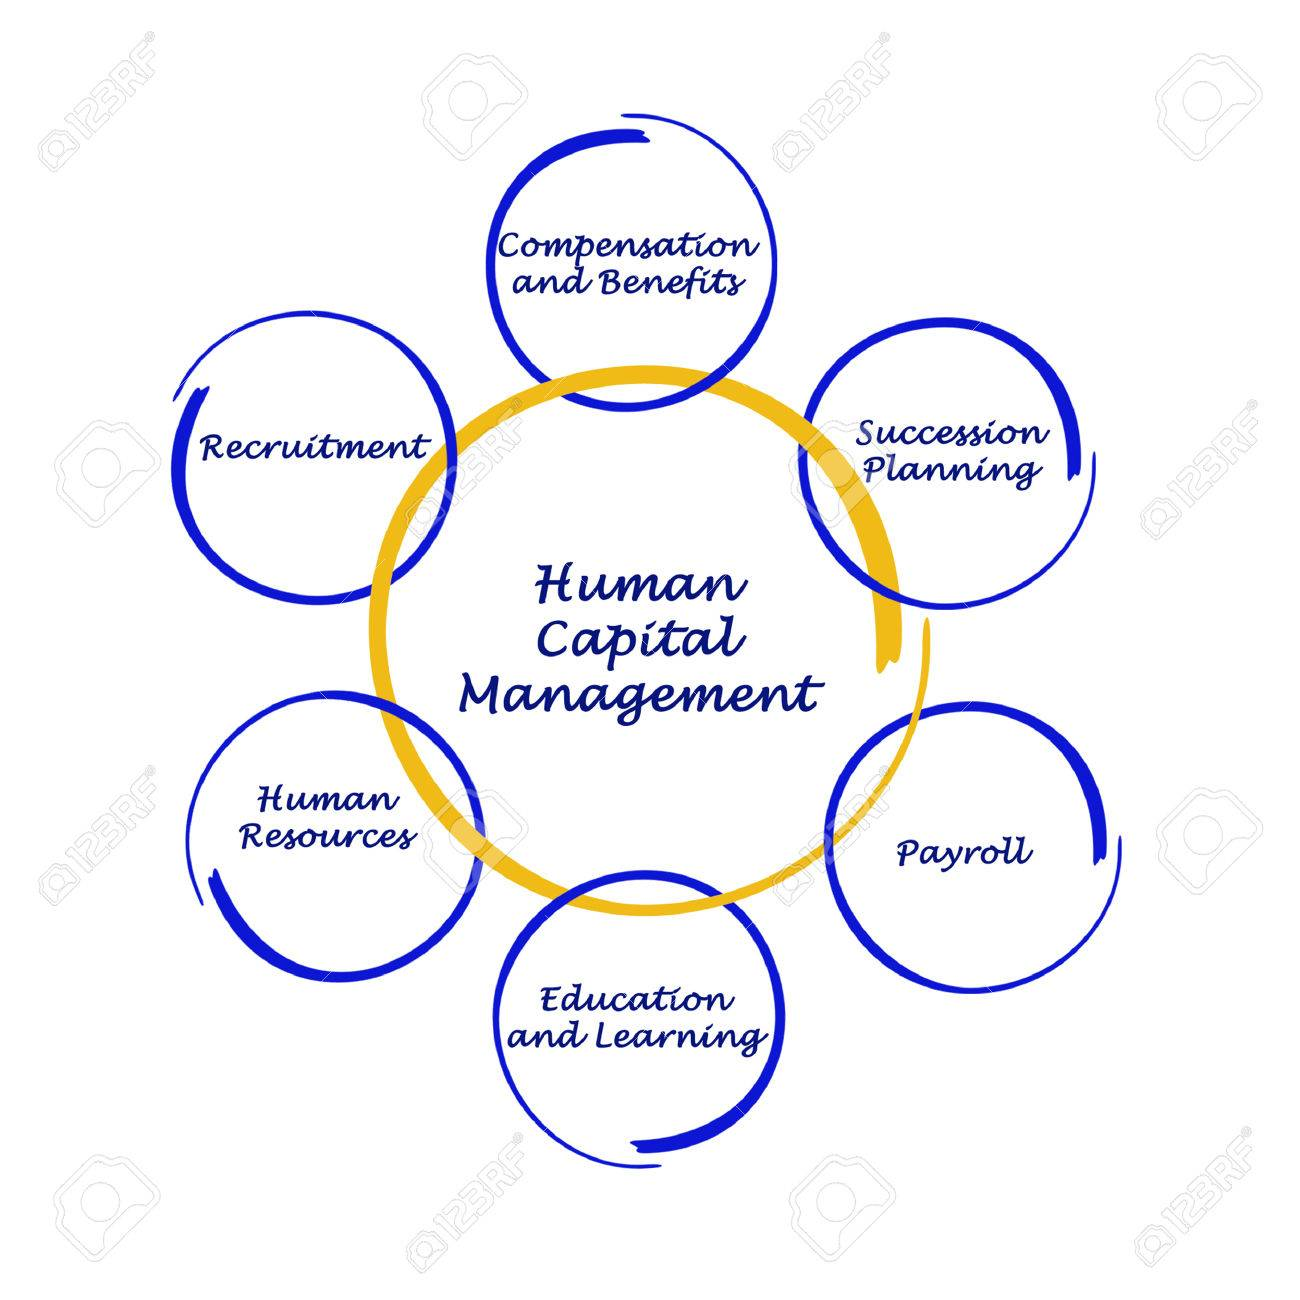 Human Capital Management Stock Photo, Picture And Royalty Free ...